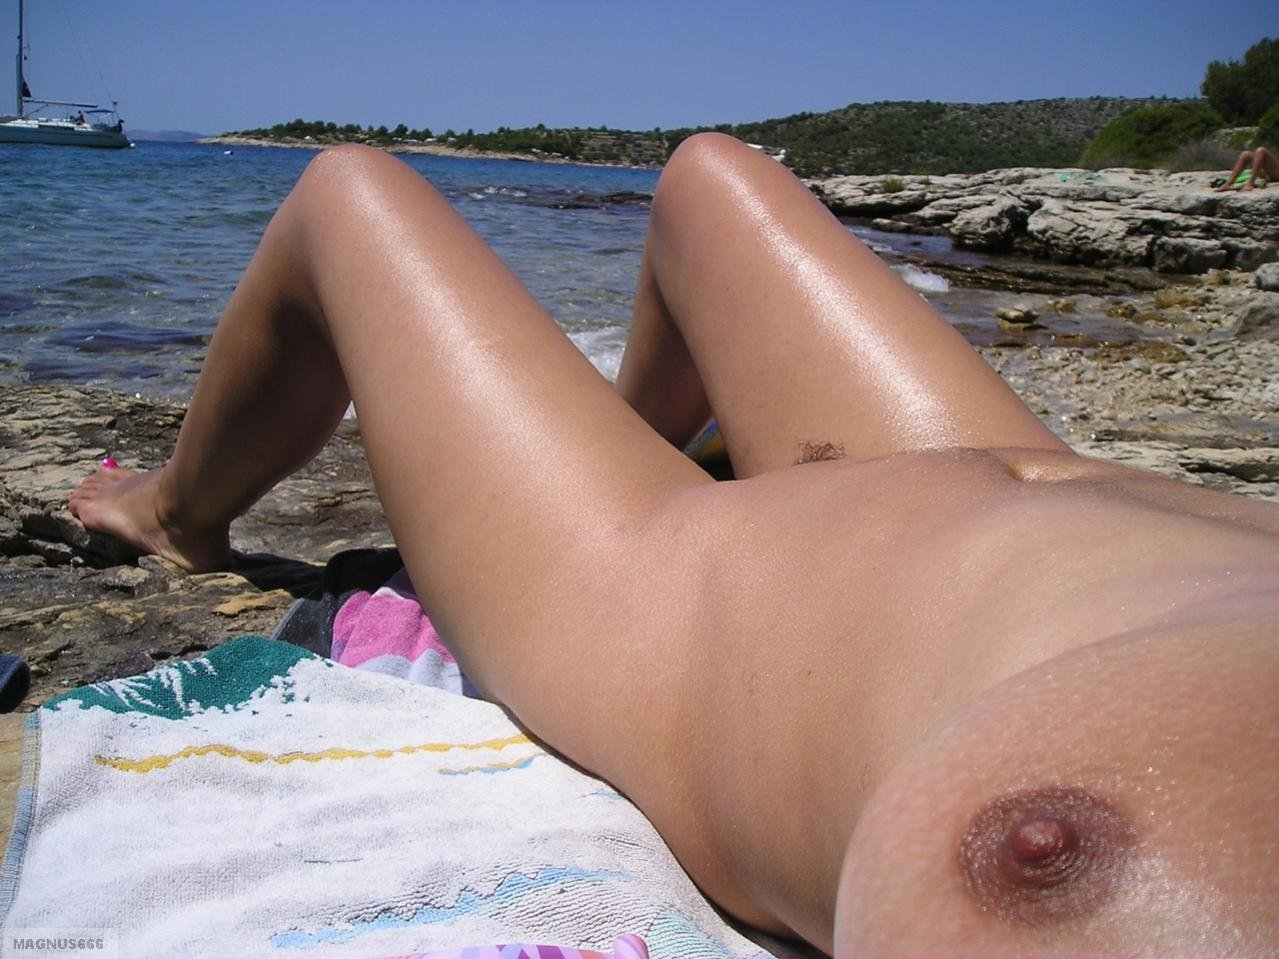 Spy cam in nude beach #1